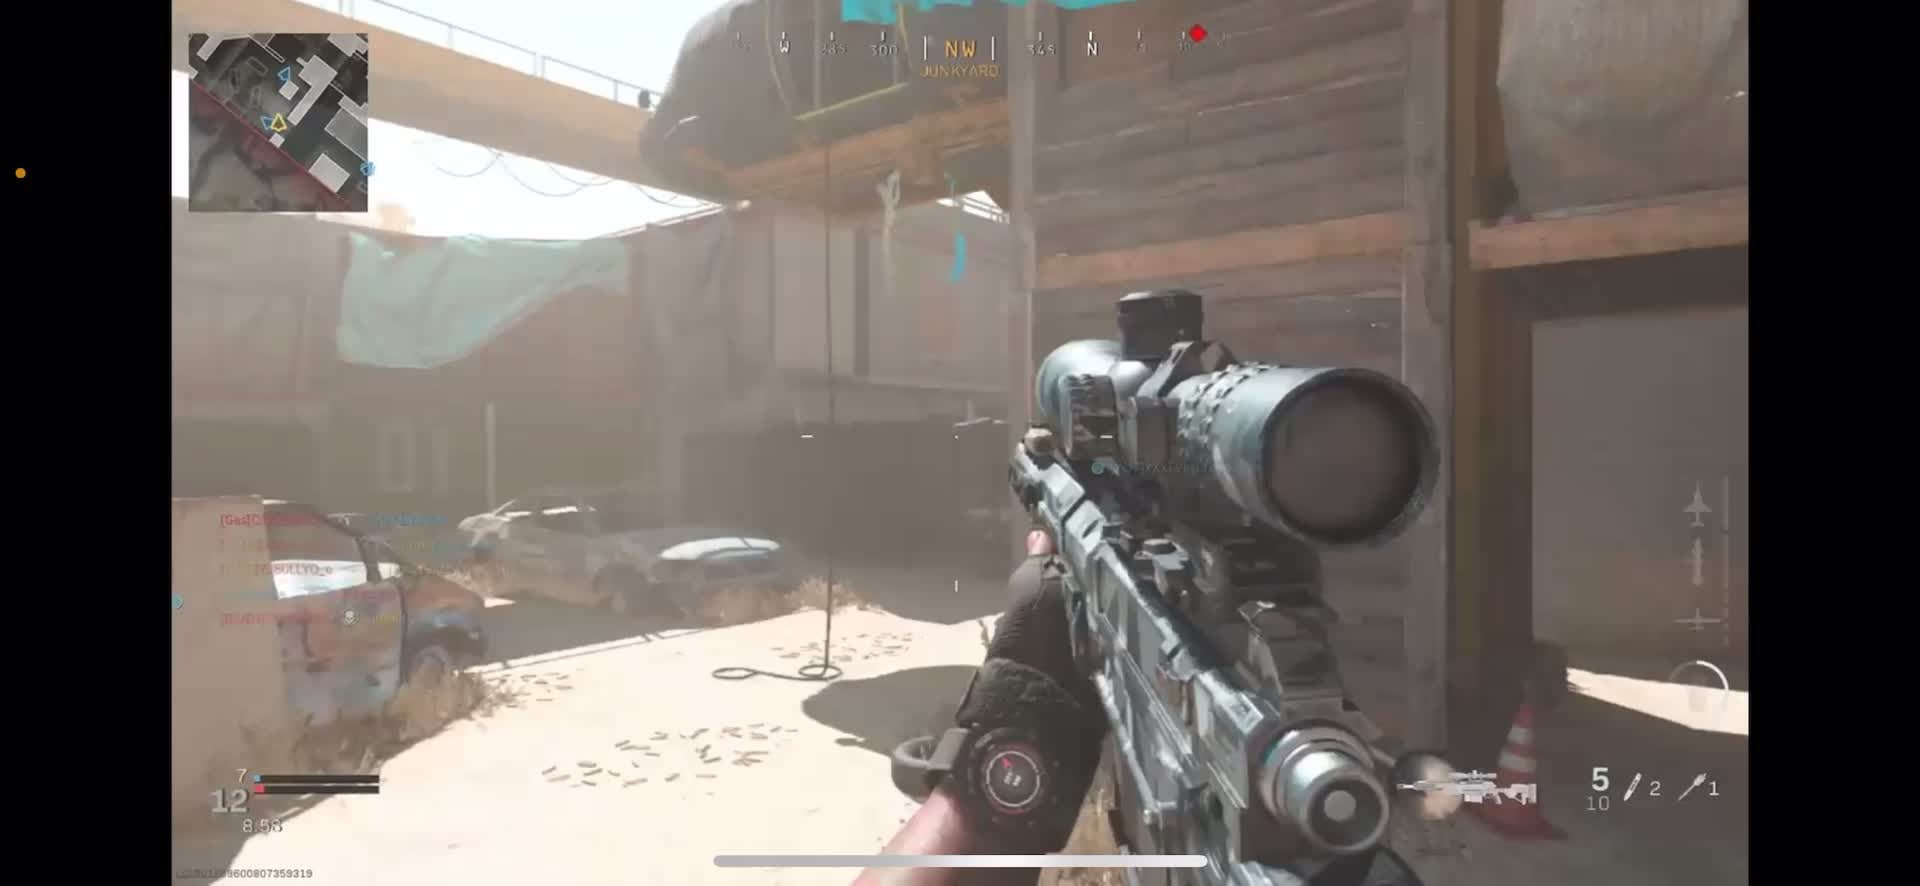 Call of Duty: General - Sniping Clip Pt.3 video cover image 0